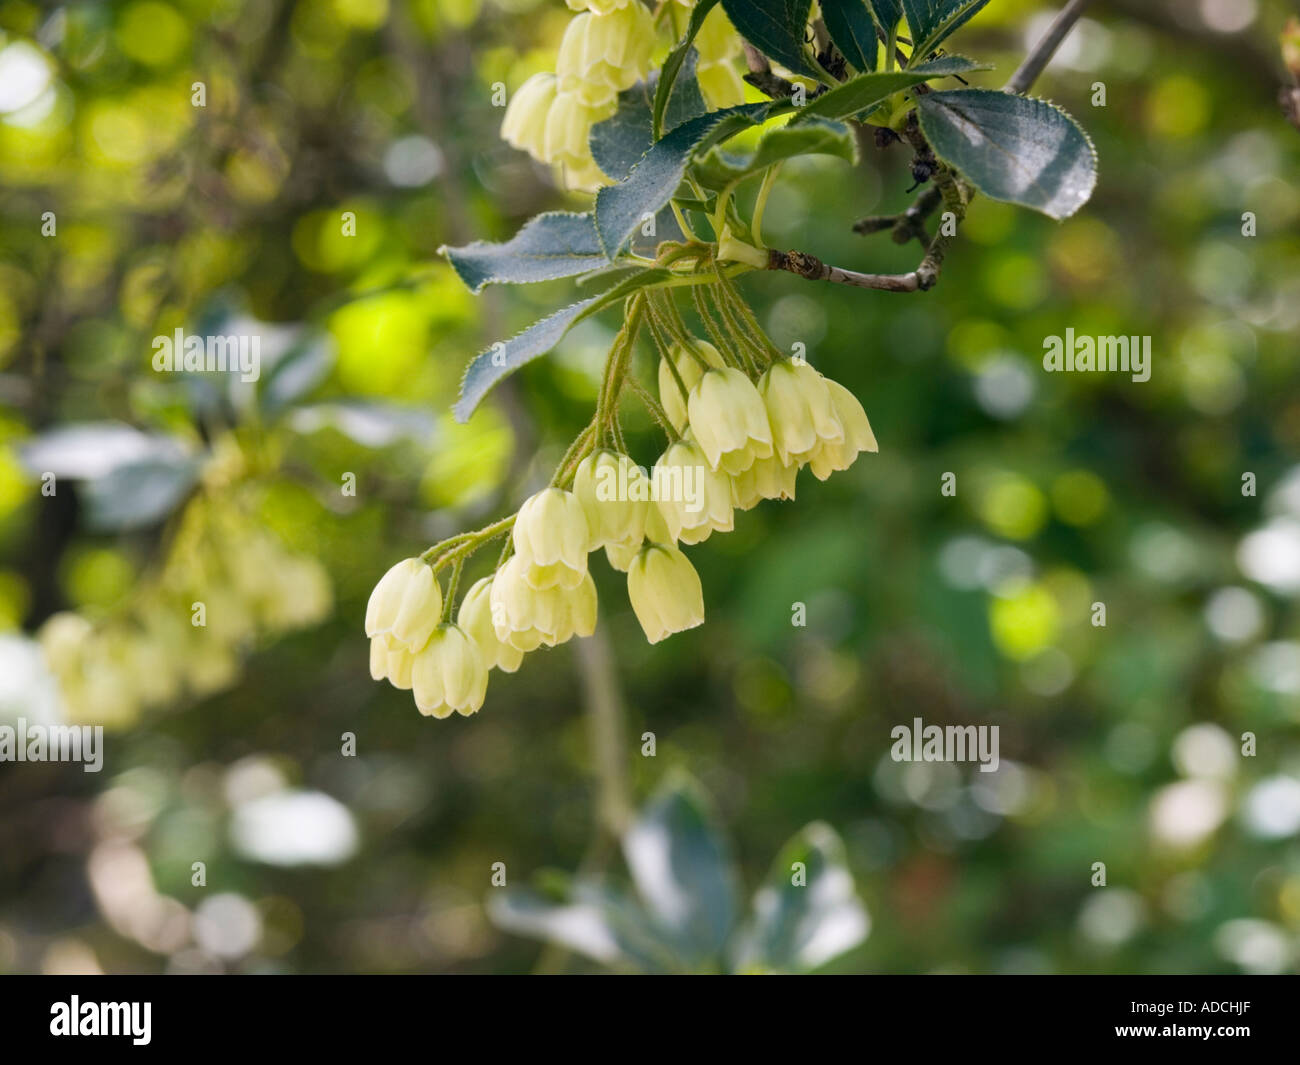 Cup Shaped Yellow Flowers Stock Photos Cup Shaped Yellow Flowers